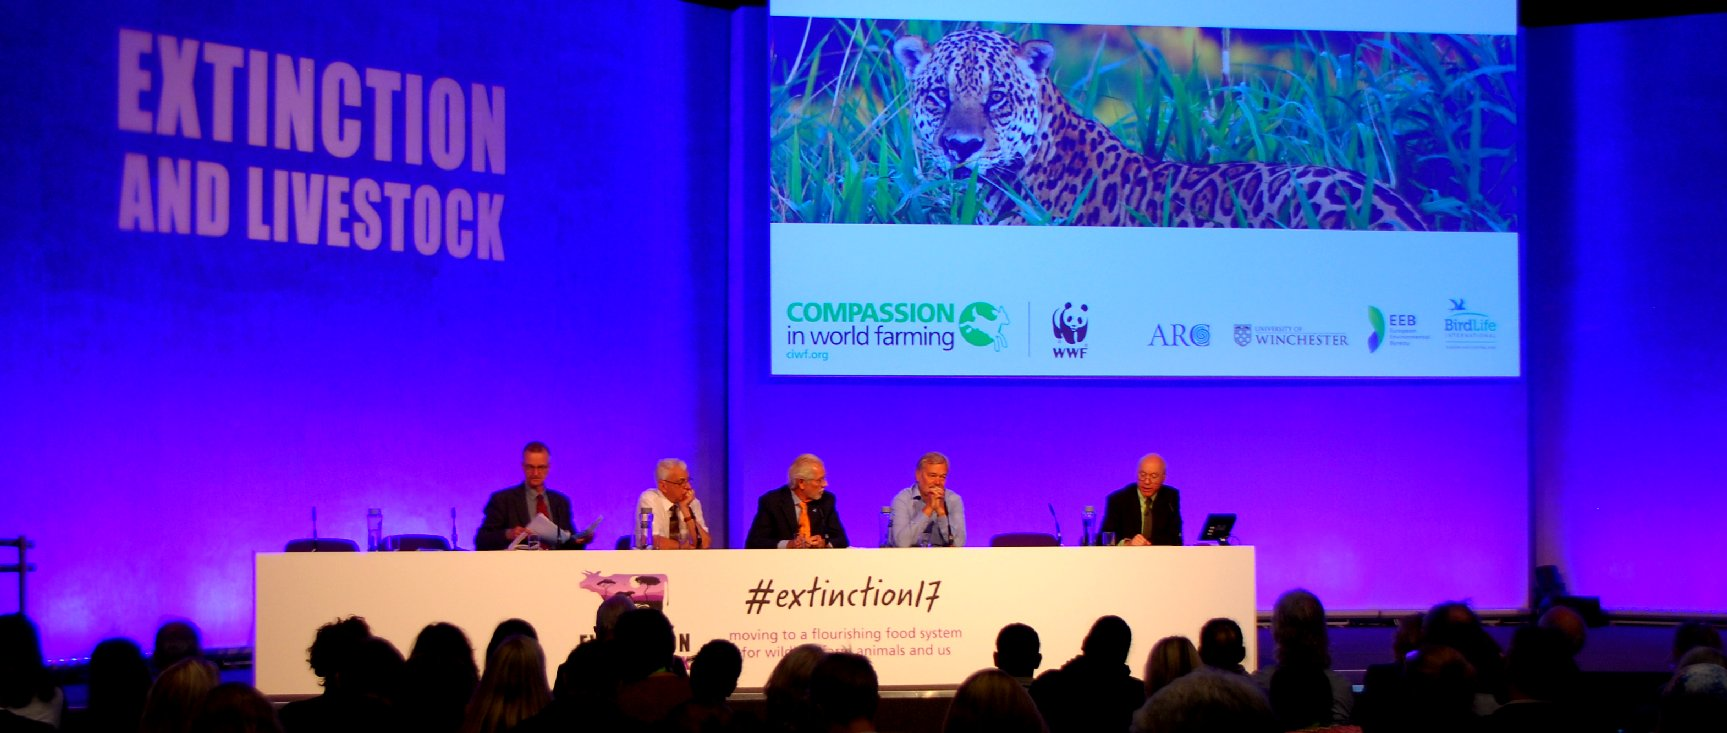 Extinction and livestock CiWF conference